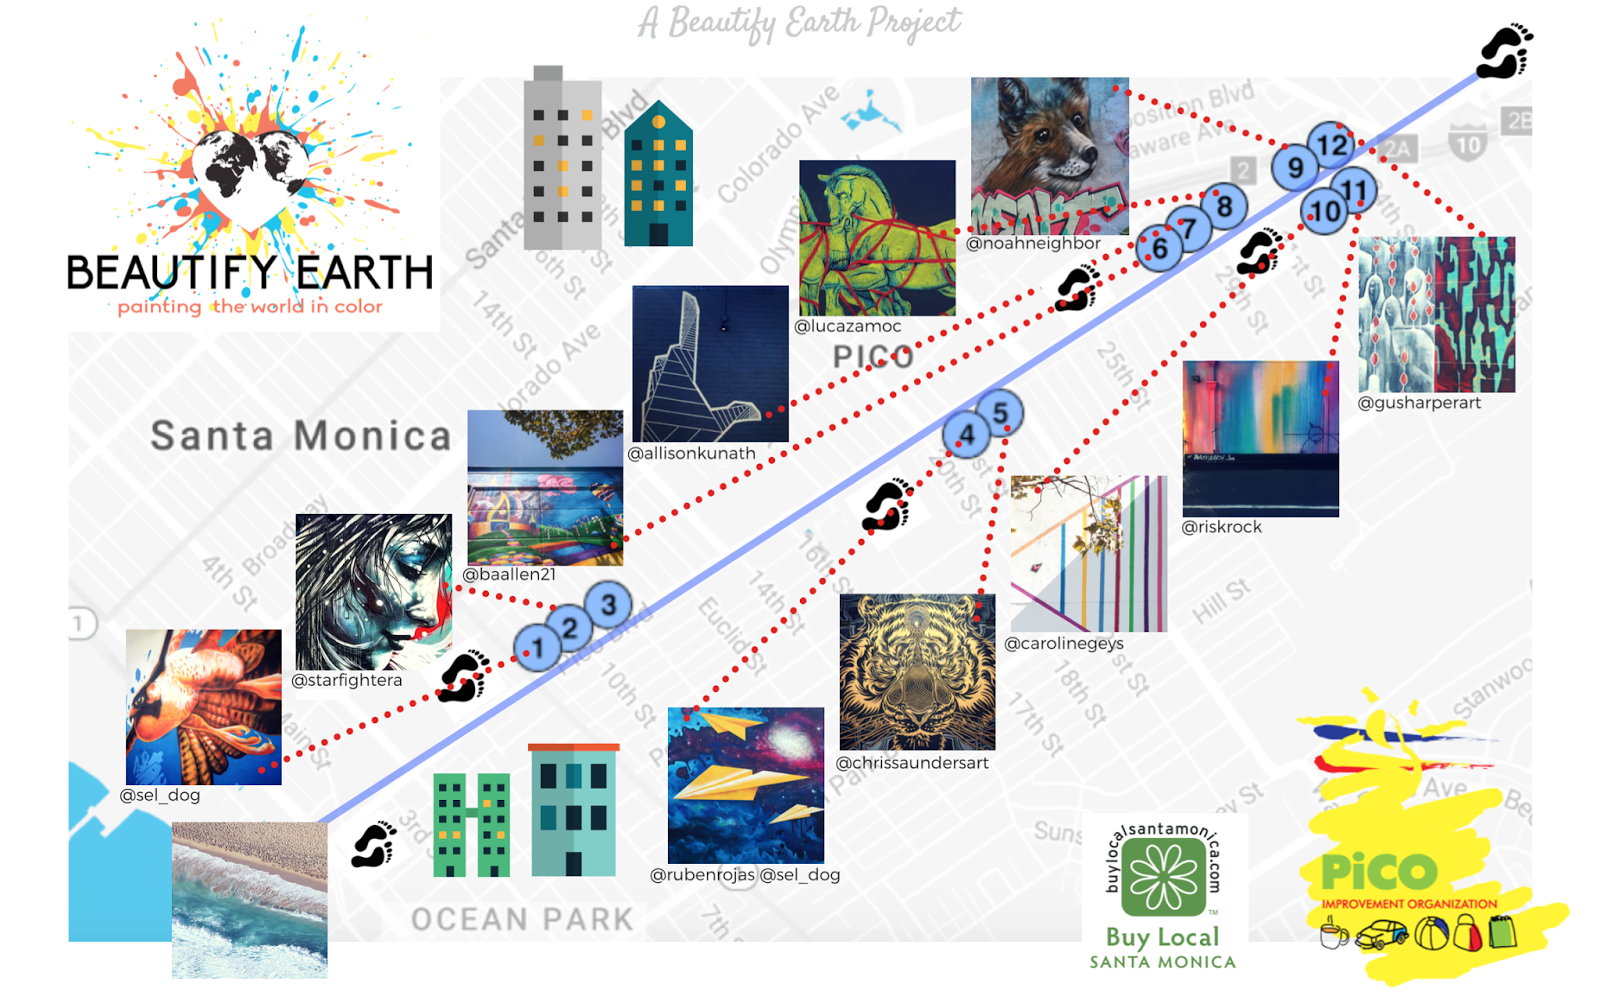 santa monica s pico improvement organization and beautify earth have shared this map of their walking tour of murals up and down the santa monica stretch of